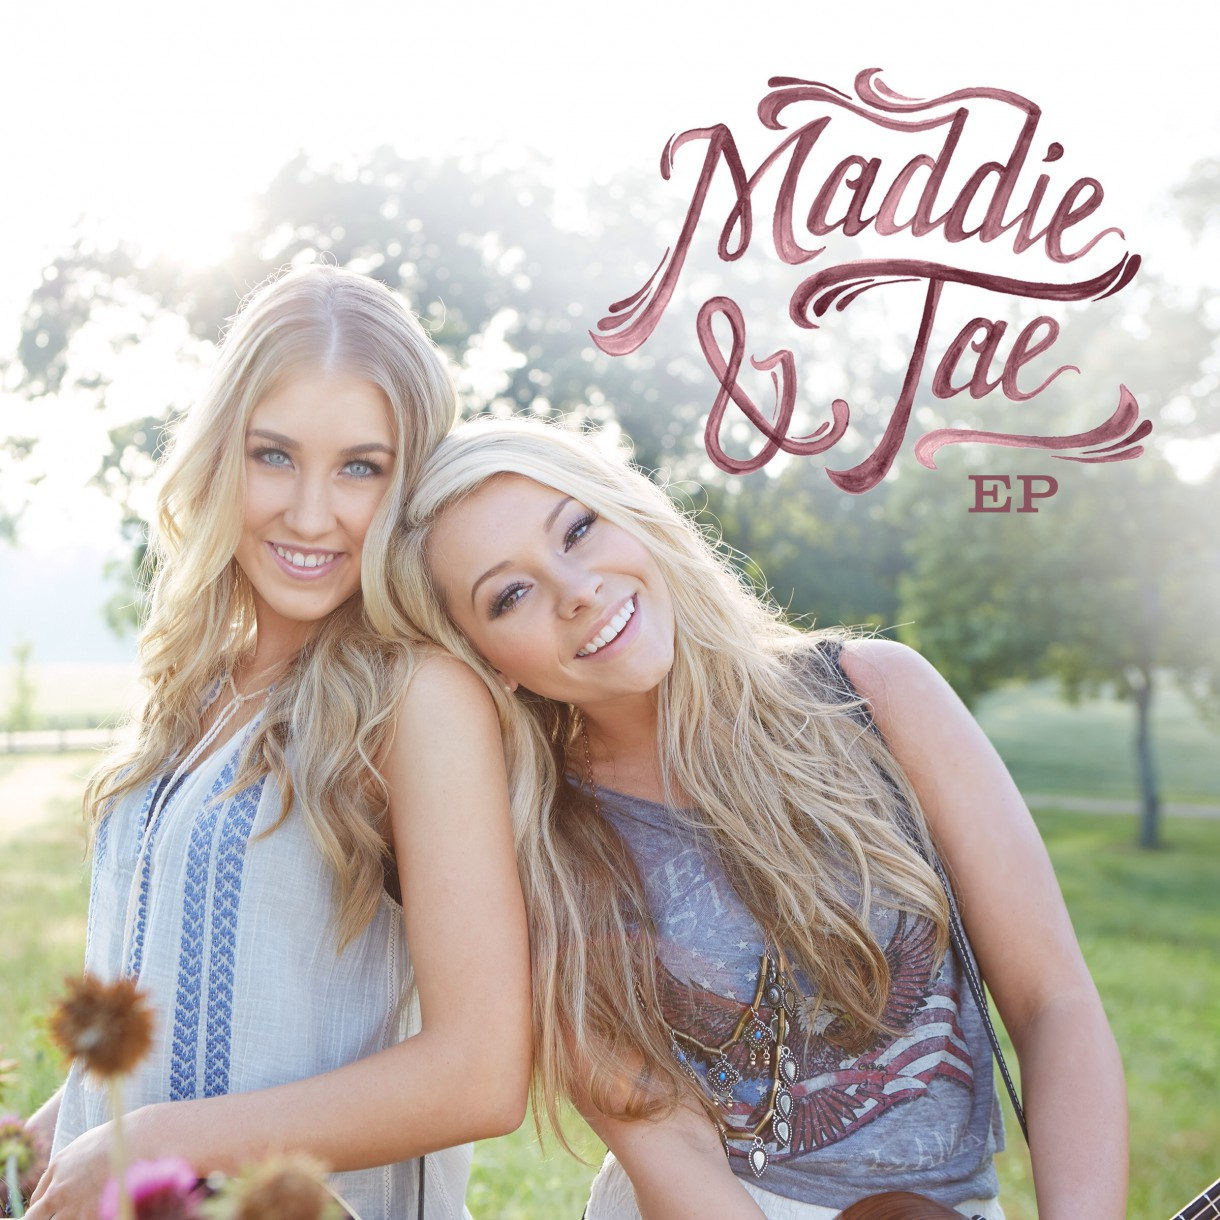 Maddie & Tae define A Girl In a Country Song | Pack News